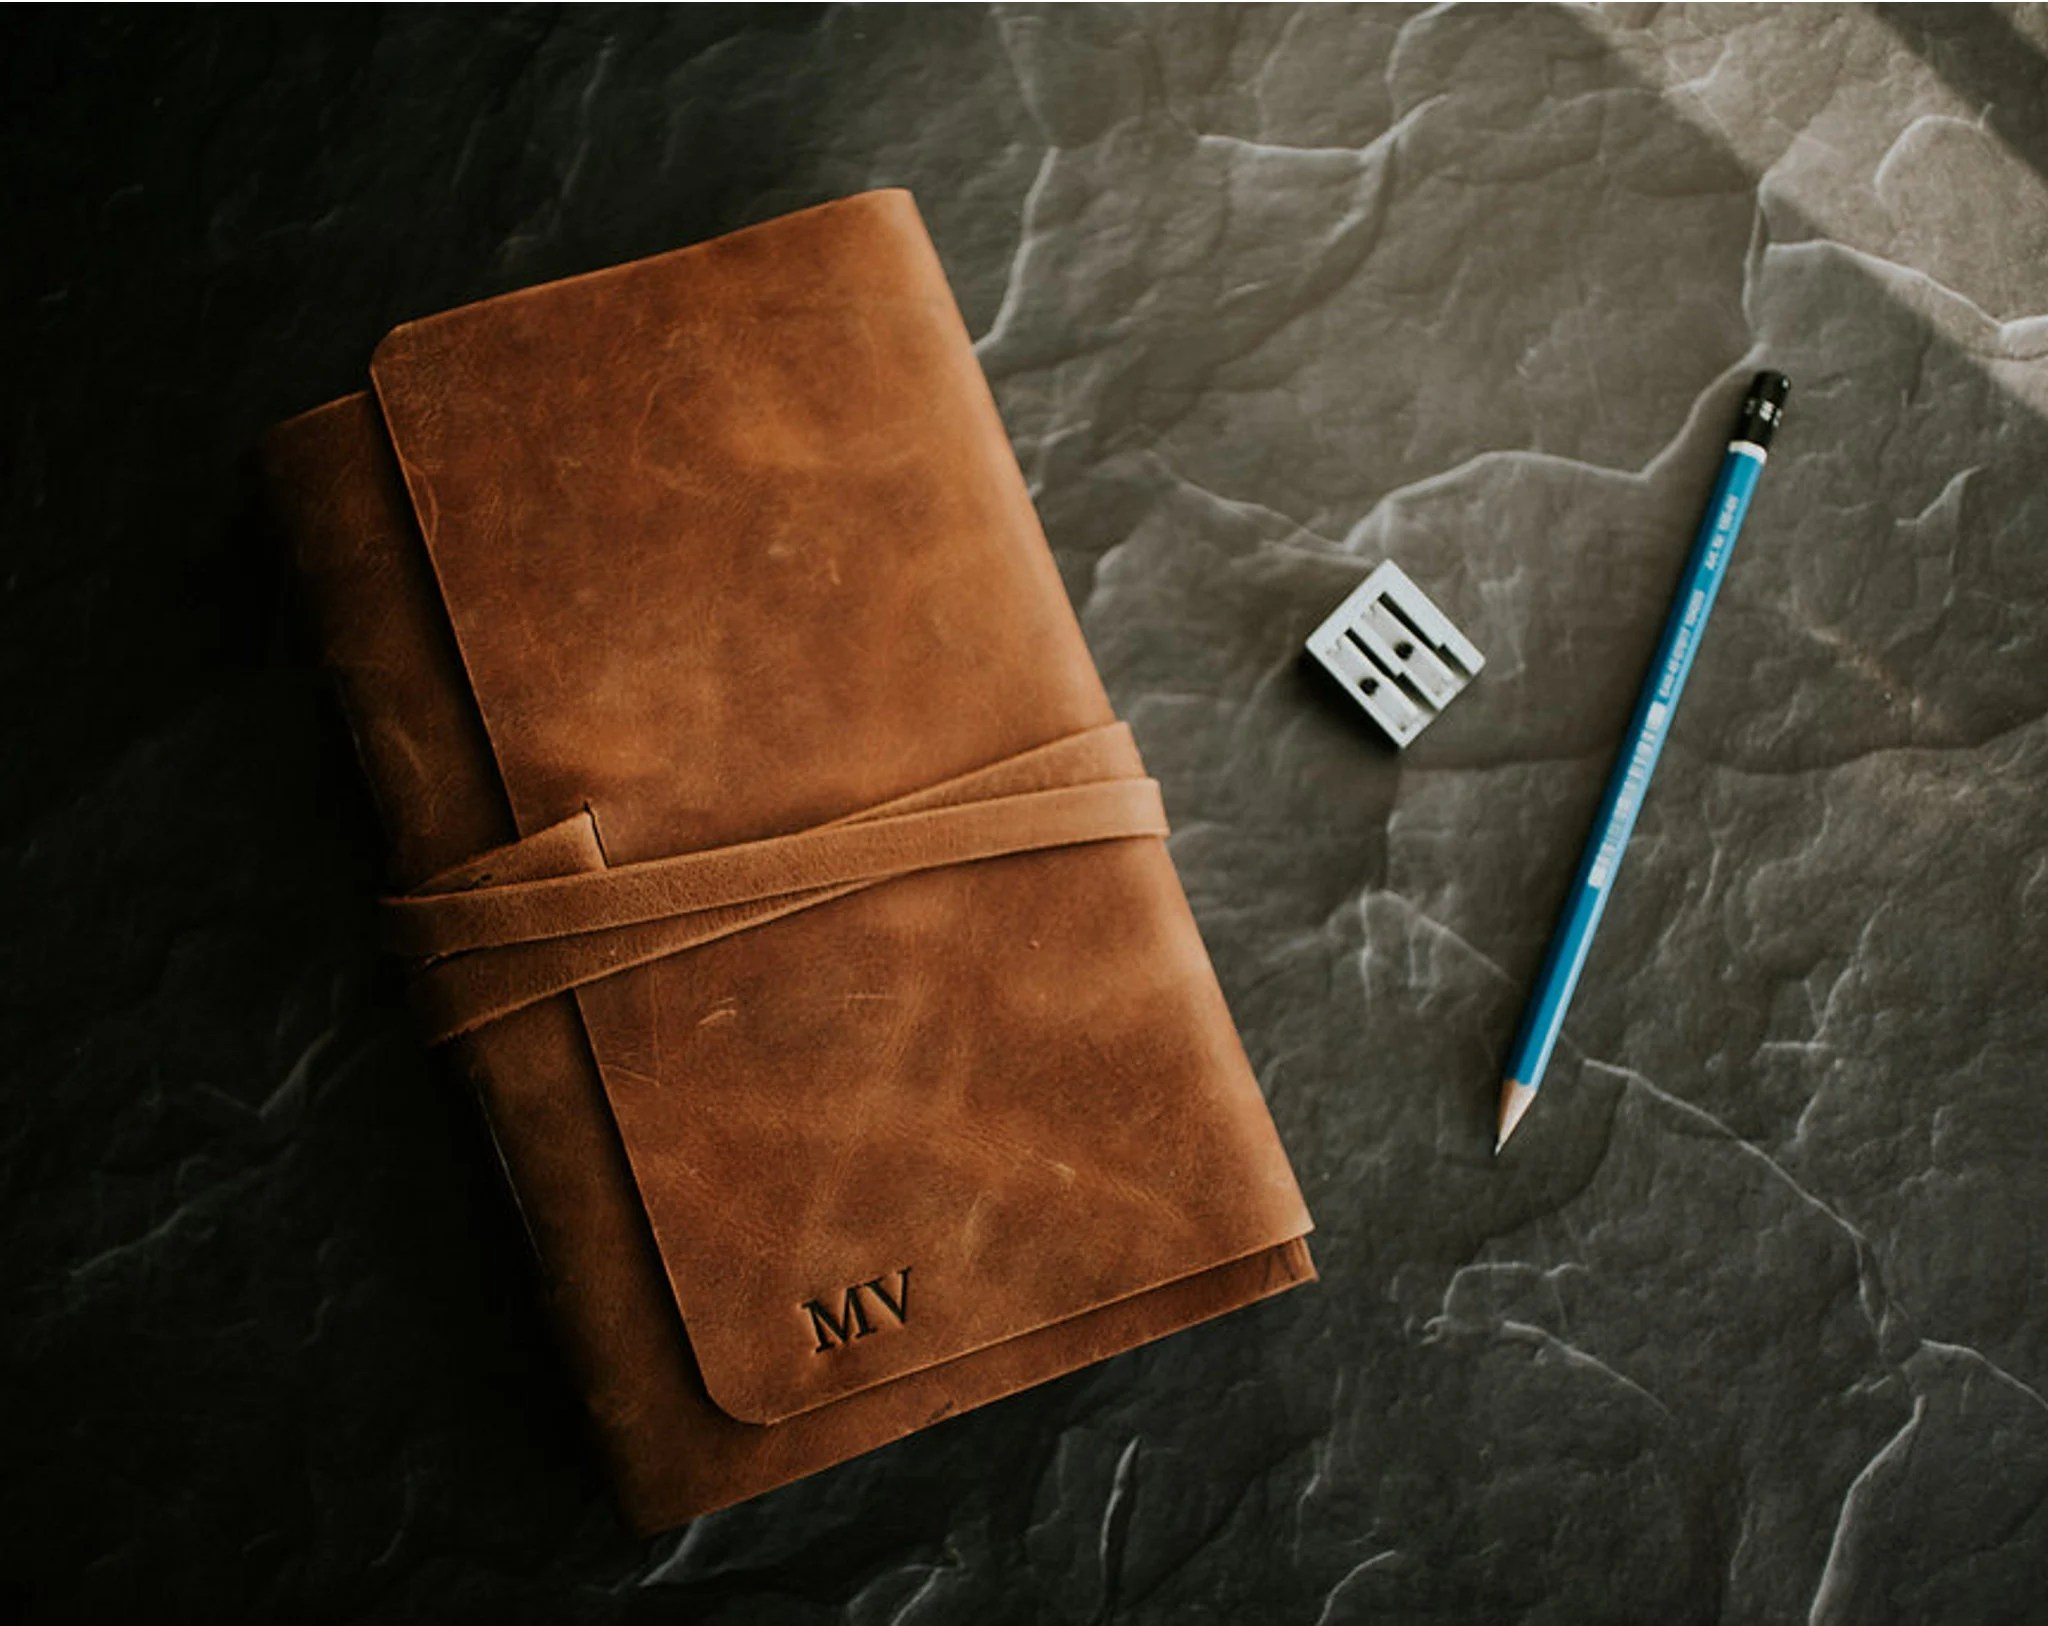 Personalized leather book Leather sketchbook Large blank image 1